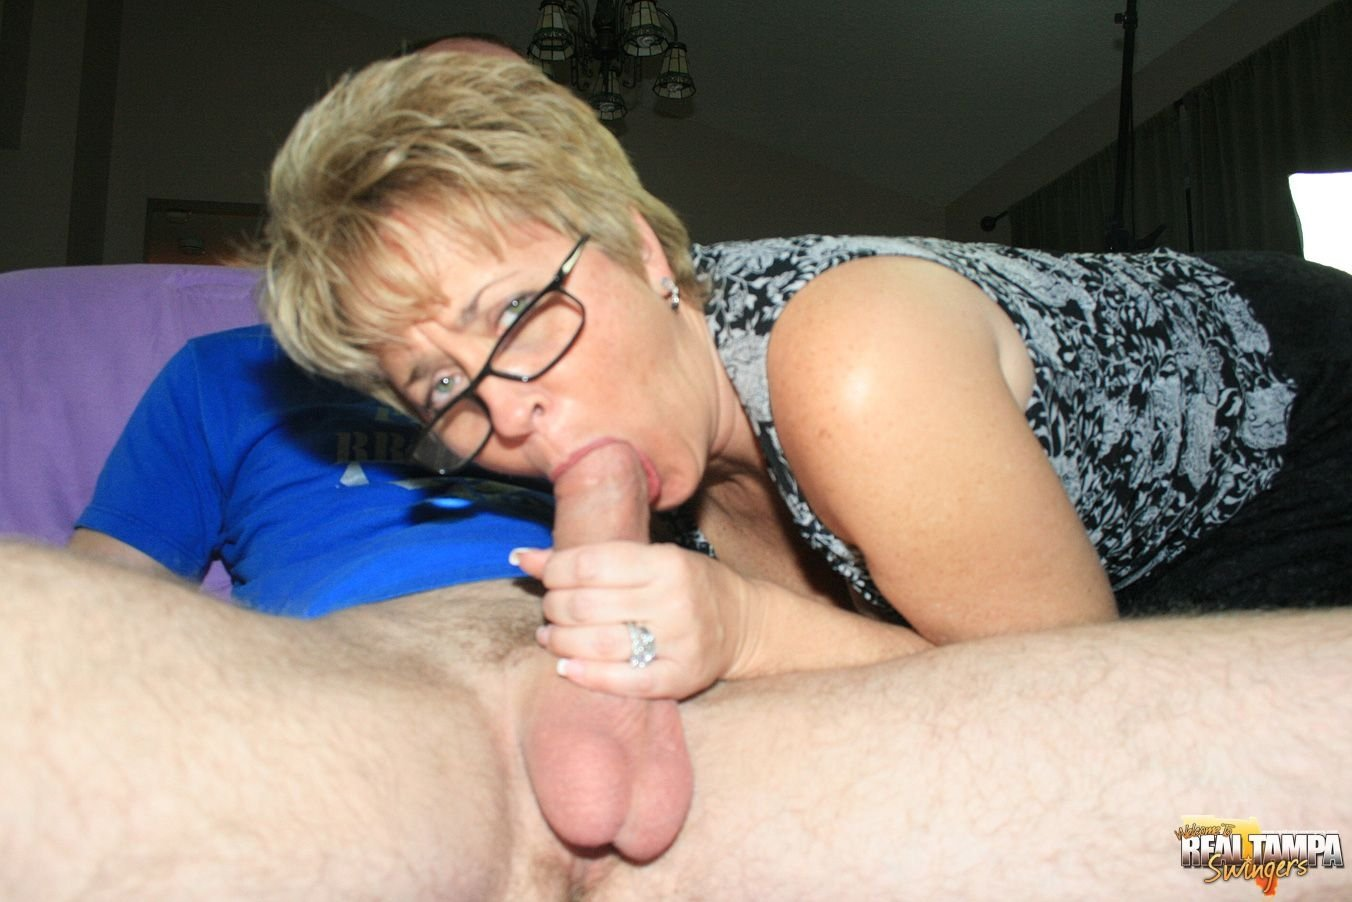 Brilliant idea Short hair mature milf glasses accept. interesting